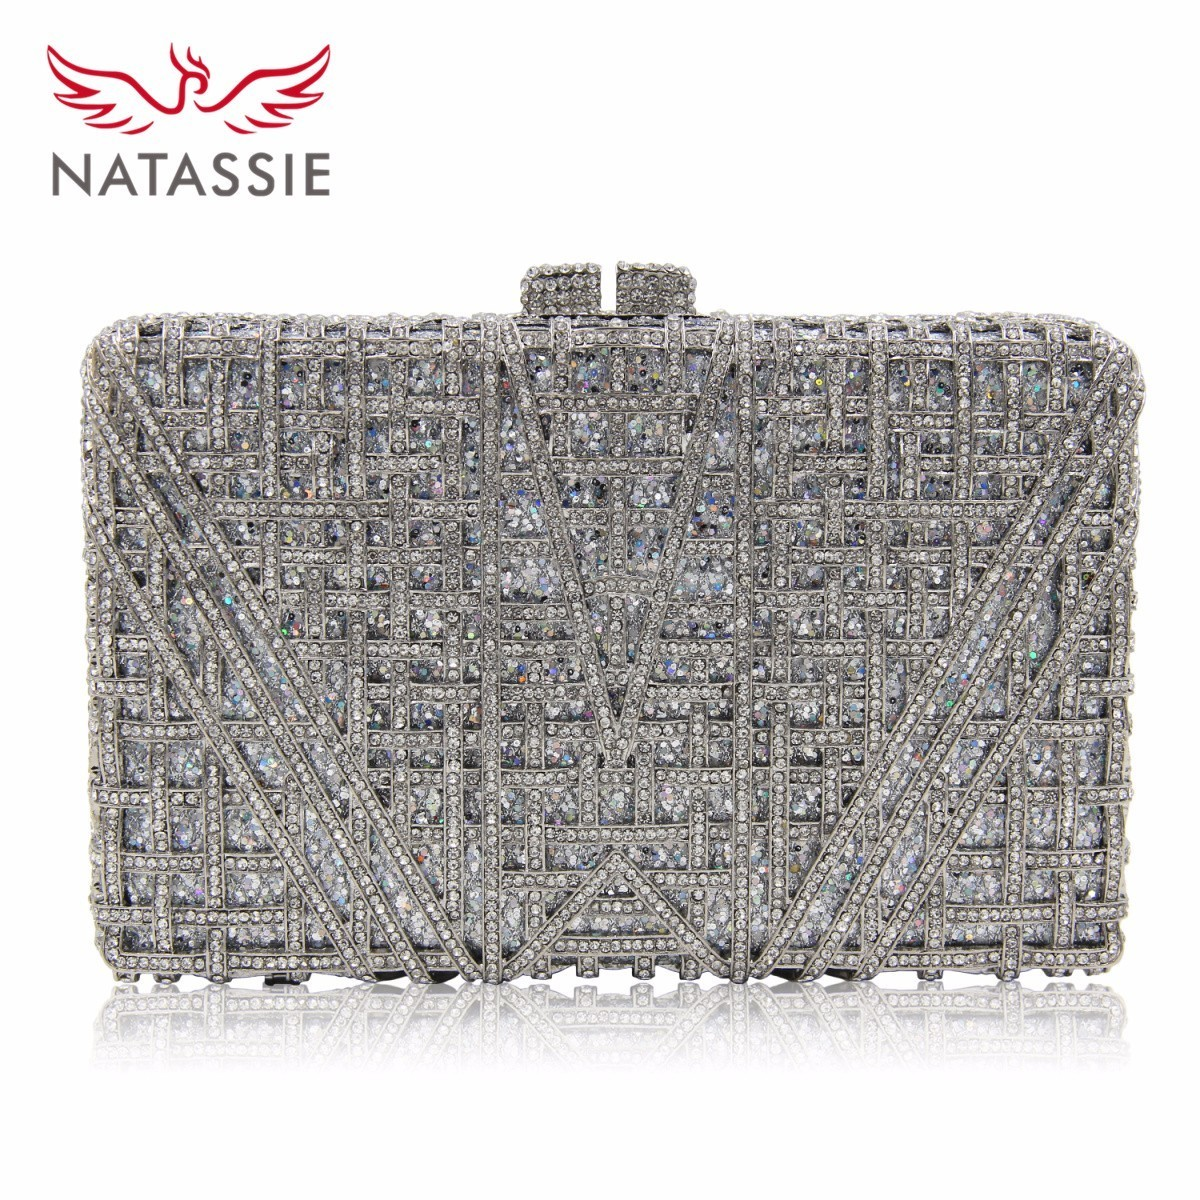 NATASSIE New Arrival Luxury Crystal Clutches Ladies Wedding Purses With Diamonds Women Evening Bag Party Purse luxury real new arrival day clutches diamonds flower women bag banquet crystal handbag wedding party handbags night clubs purse